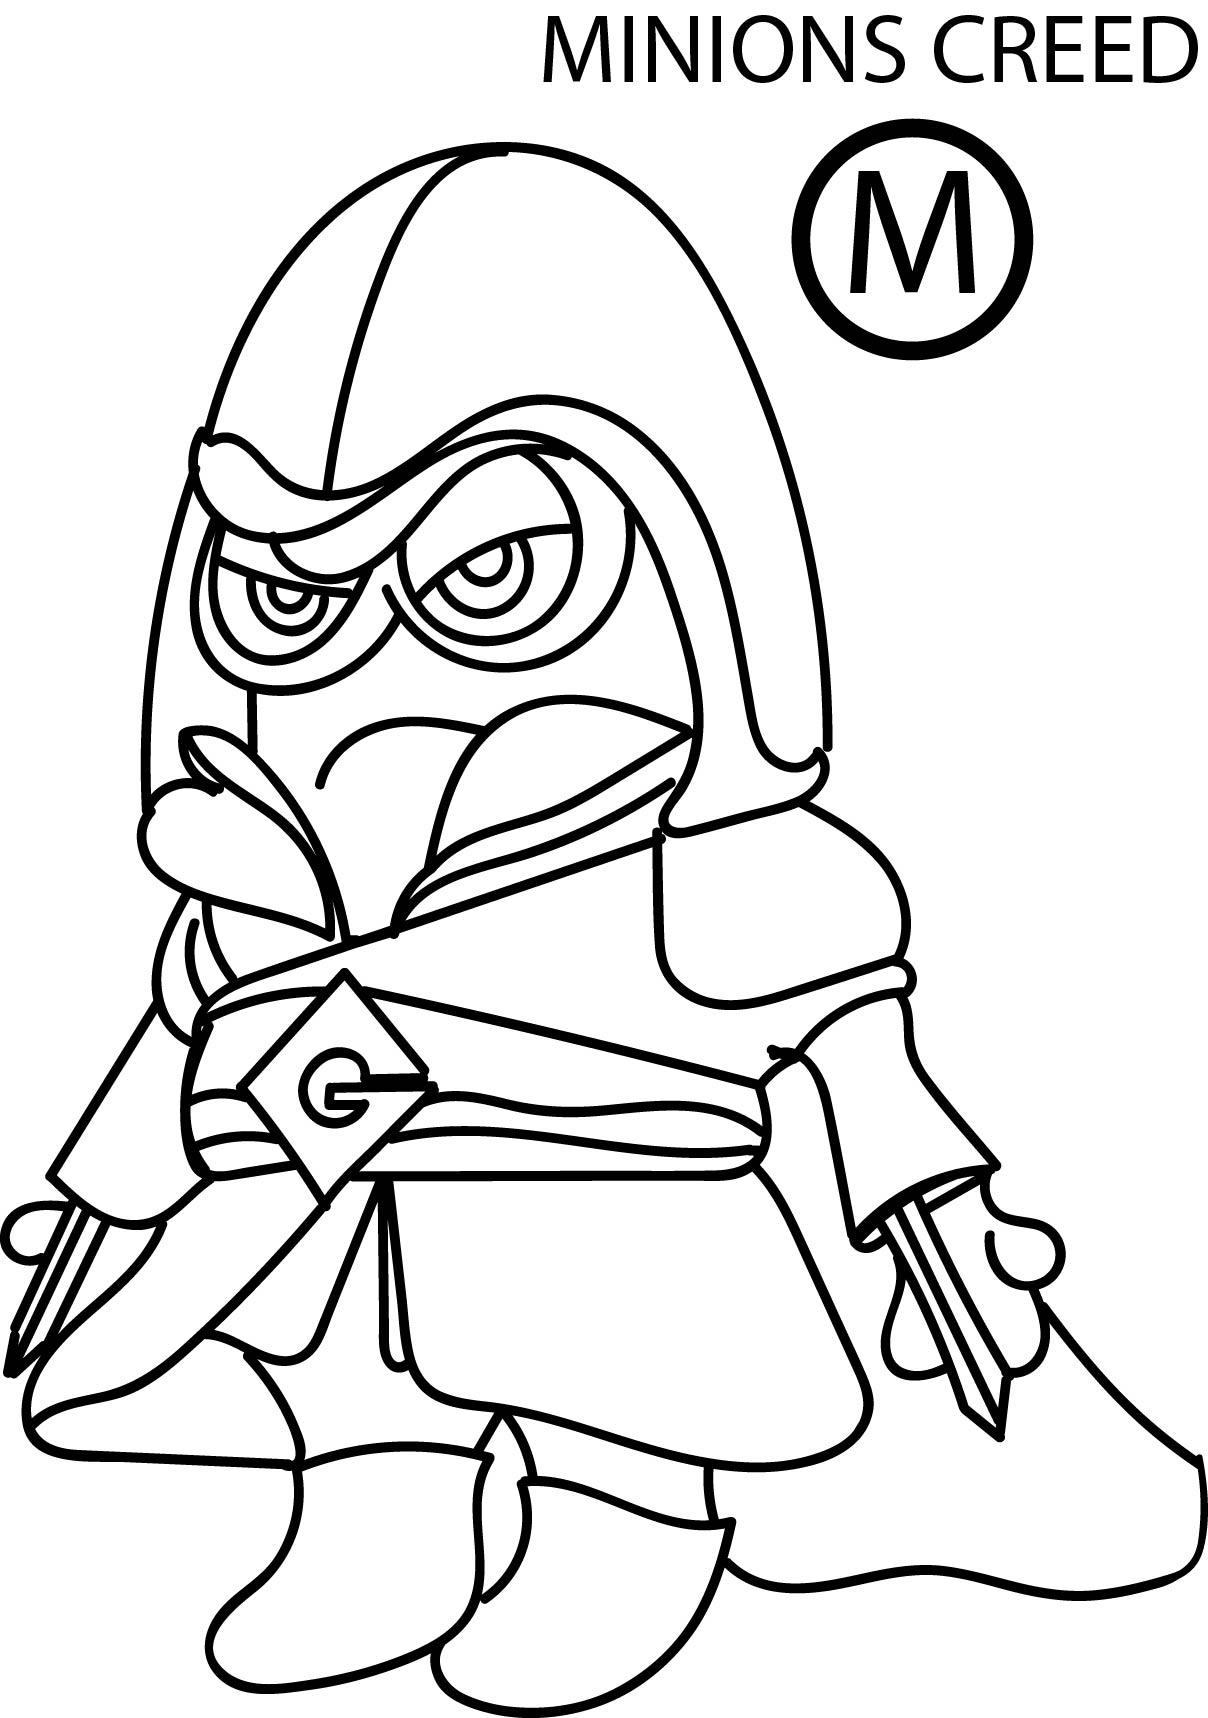 Despicable Me Minion Creed Coloring Page